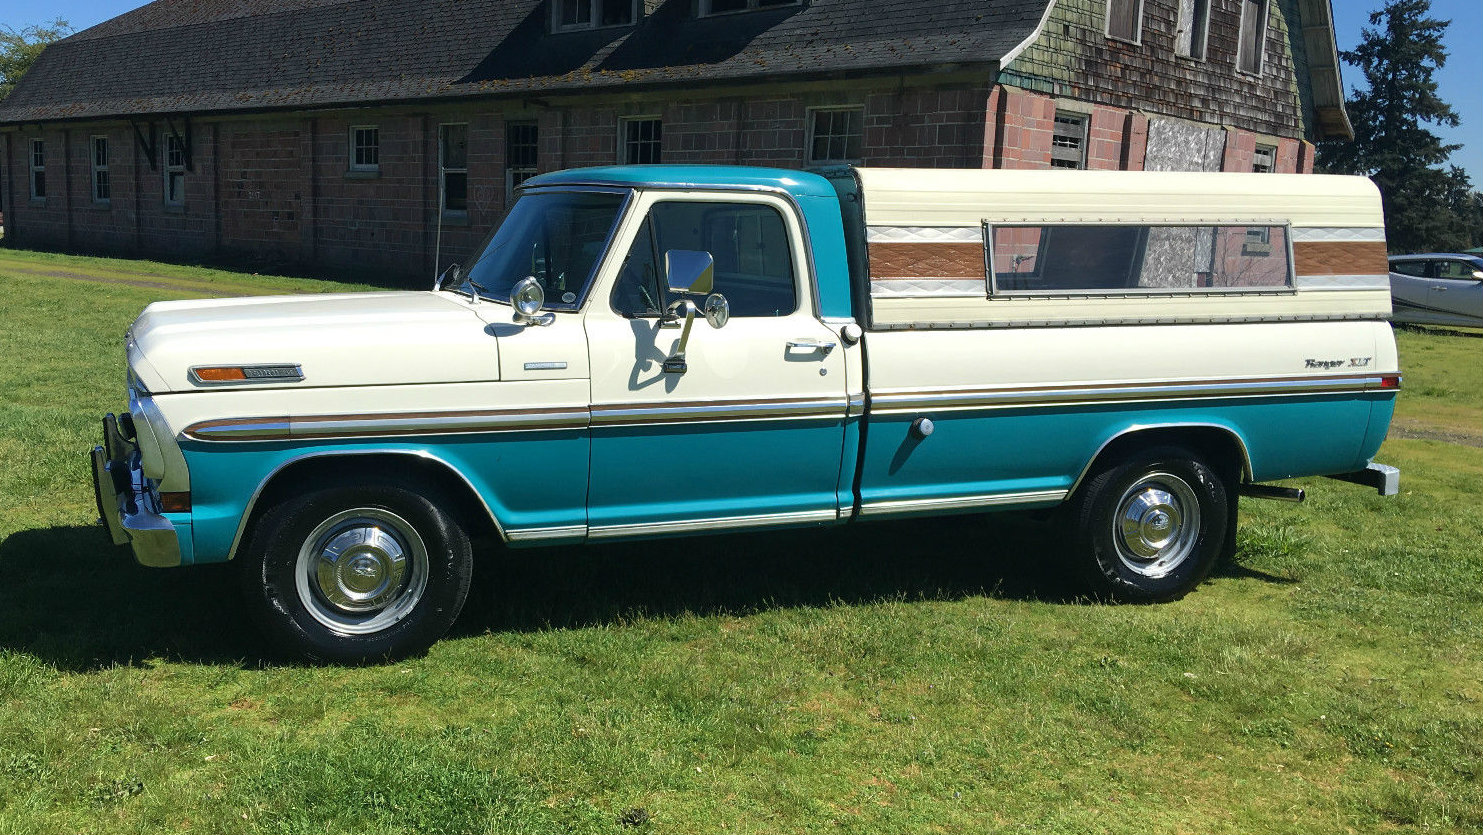 Used Ford Ranger For Sale >> Thumbs Up Wherever It Goes: 1970 Ford F250 Ranger XLT